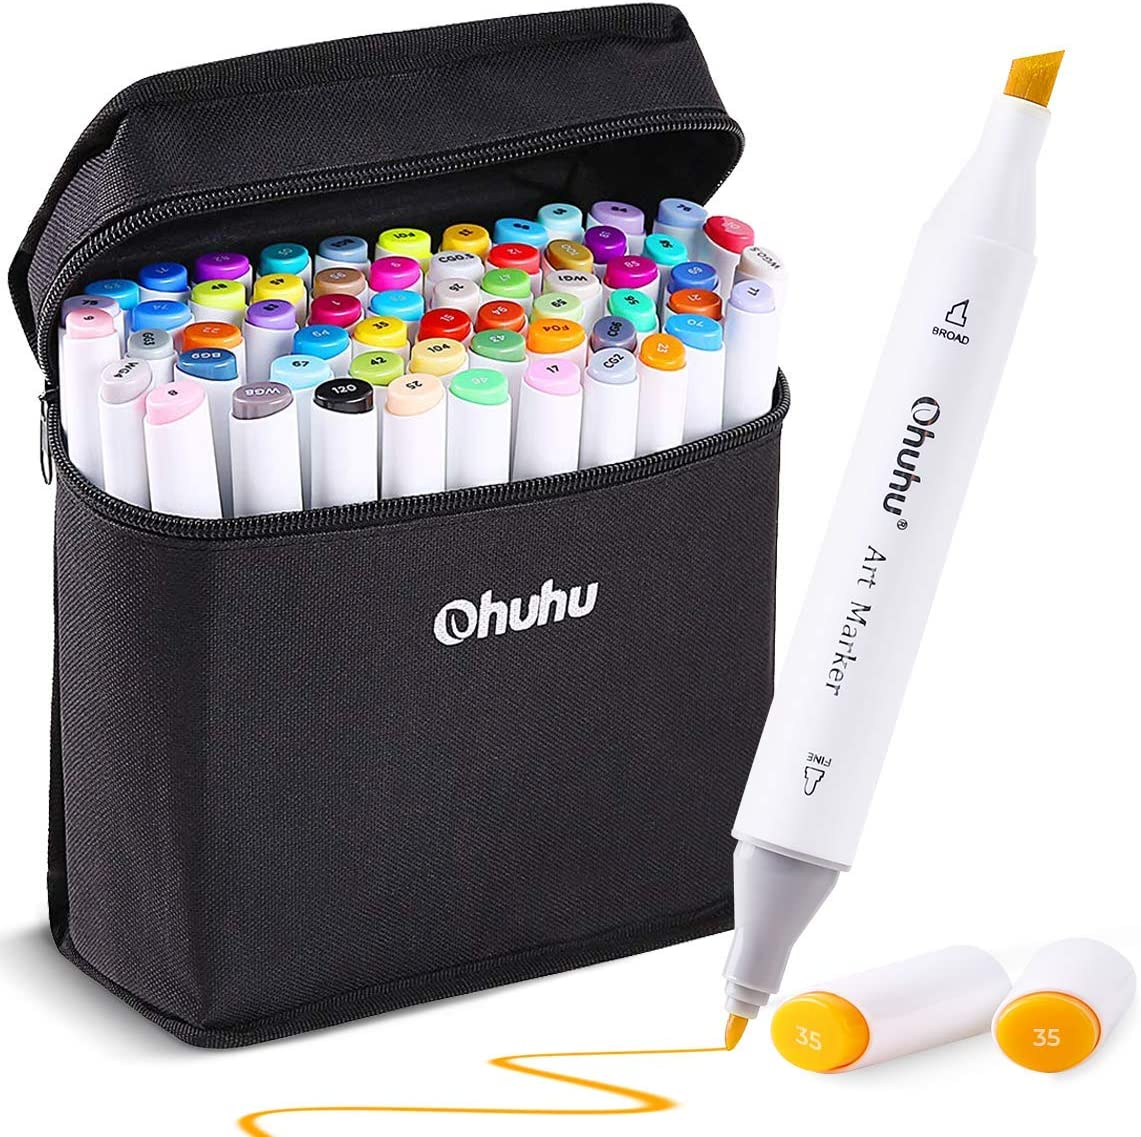 60 Colors Alcohol Art Markers, Ohuhu Double Tipped Coloring Marker for Kids, Fine and Chisel Tip Dual Alcohol Based Drawing Markers for Sketch Adult Coloring Book, Comes with Colorless Marker Blender